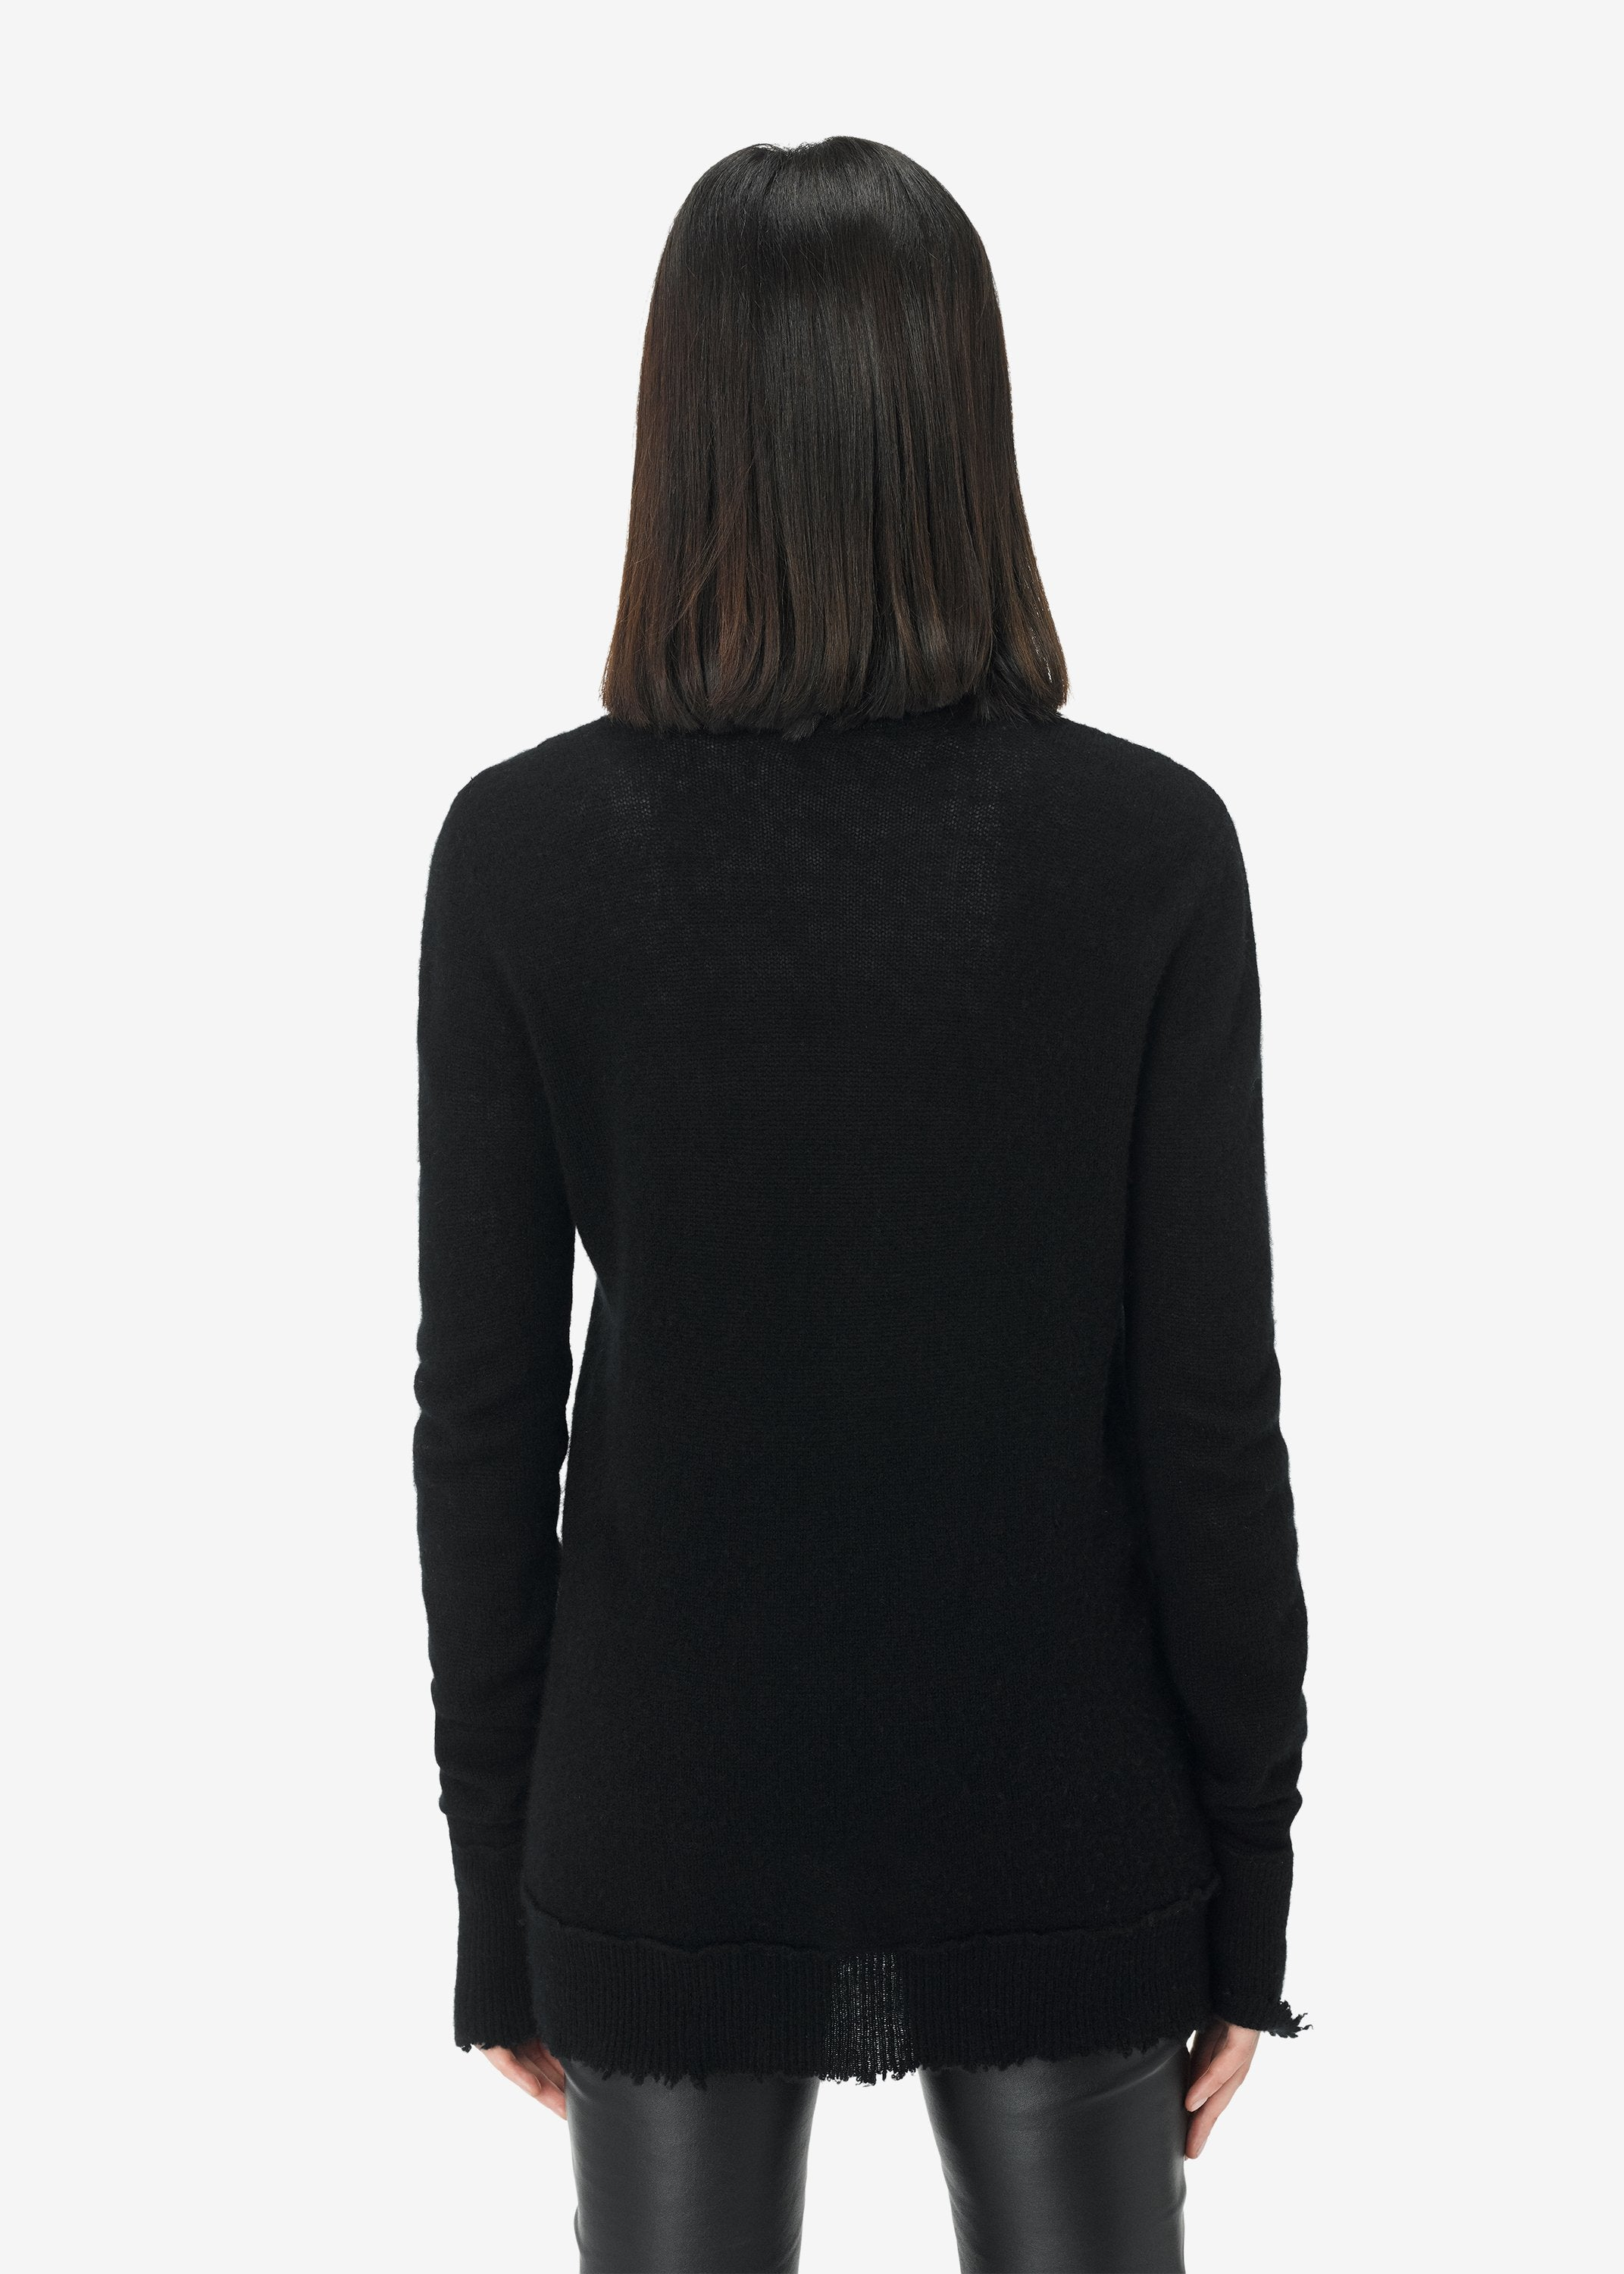 turtleneck-knit-black-image-5